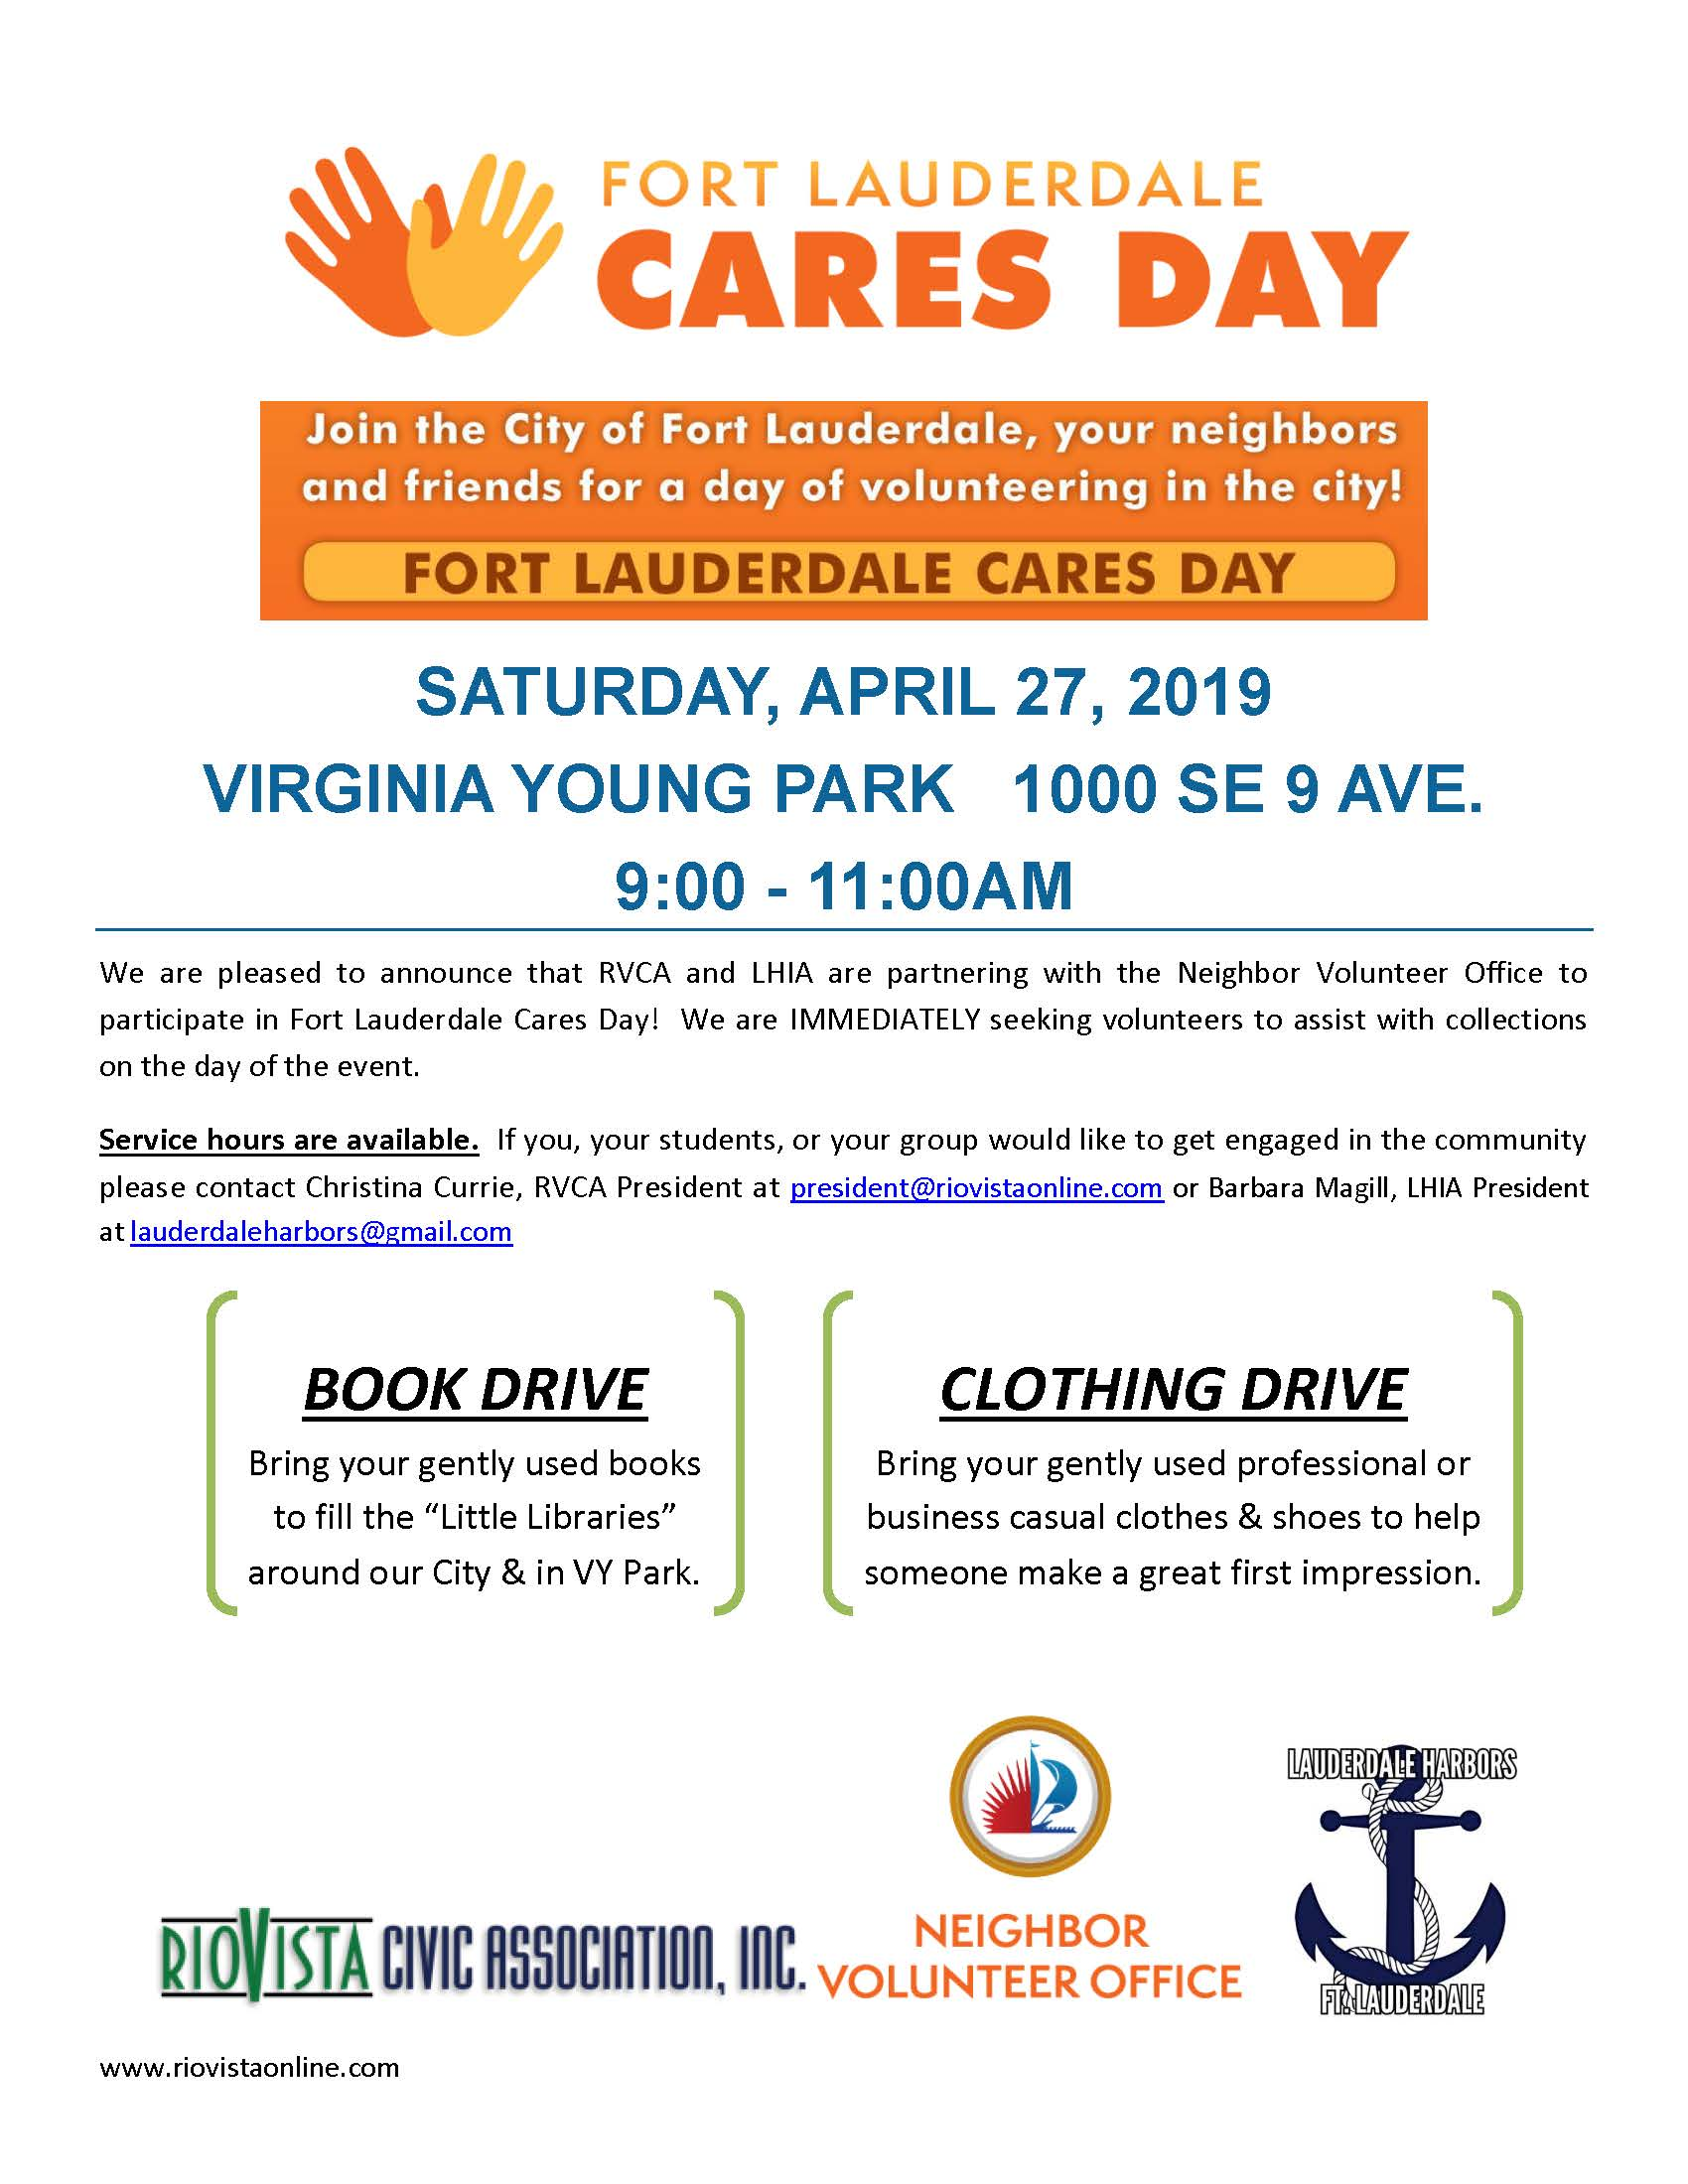 RVCA LHIA Joint CARES DAY 4.27.19